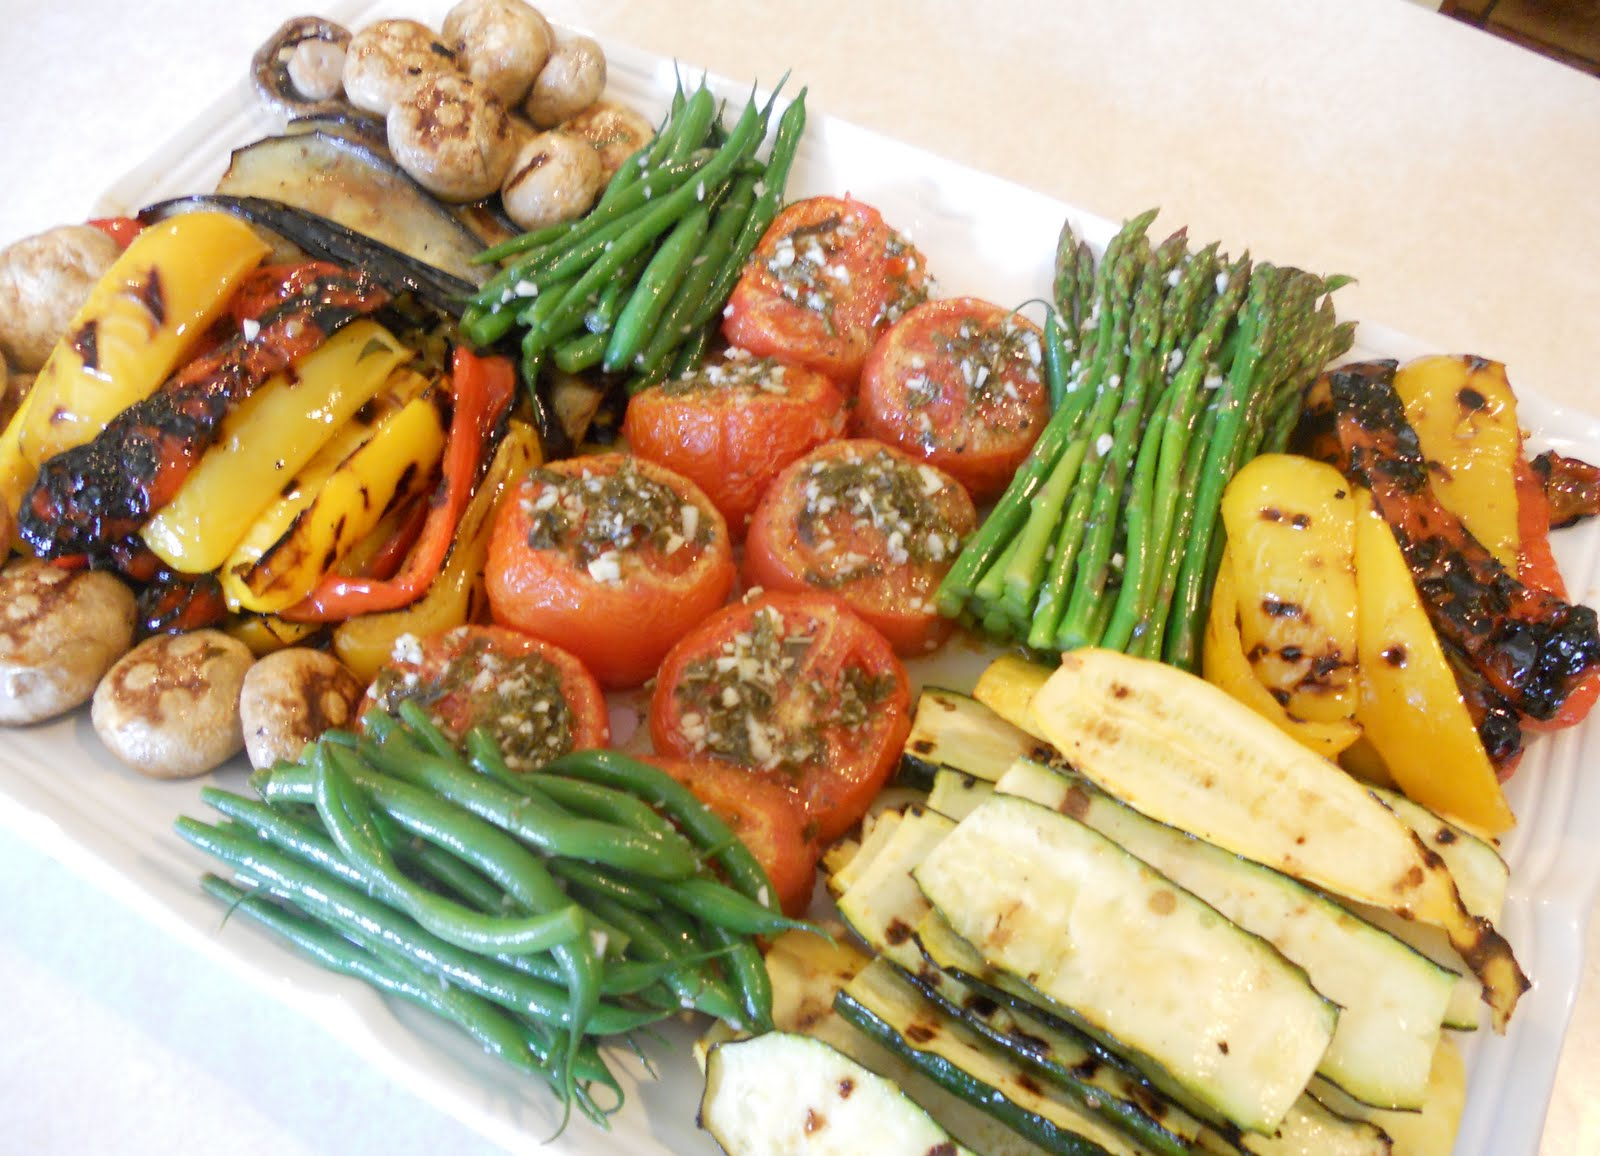 Room Temperature Grilled Vegetables